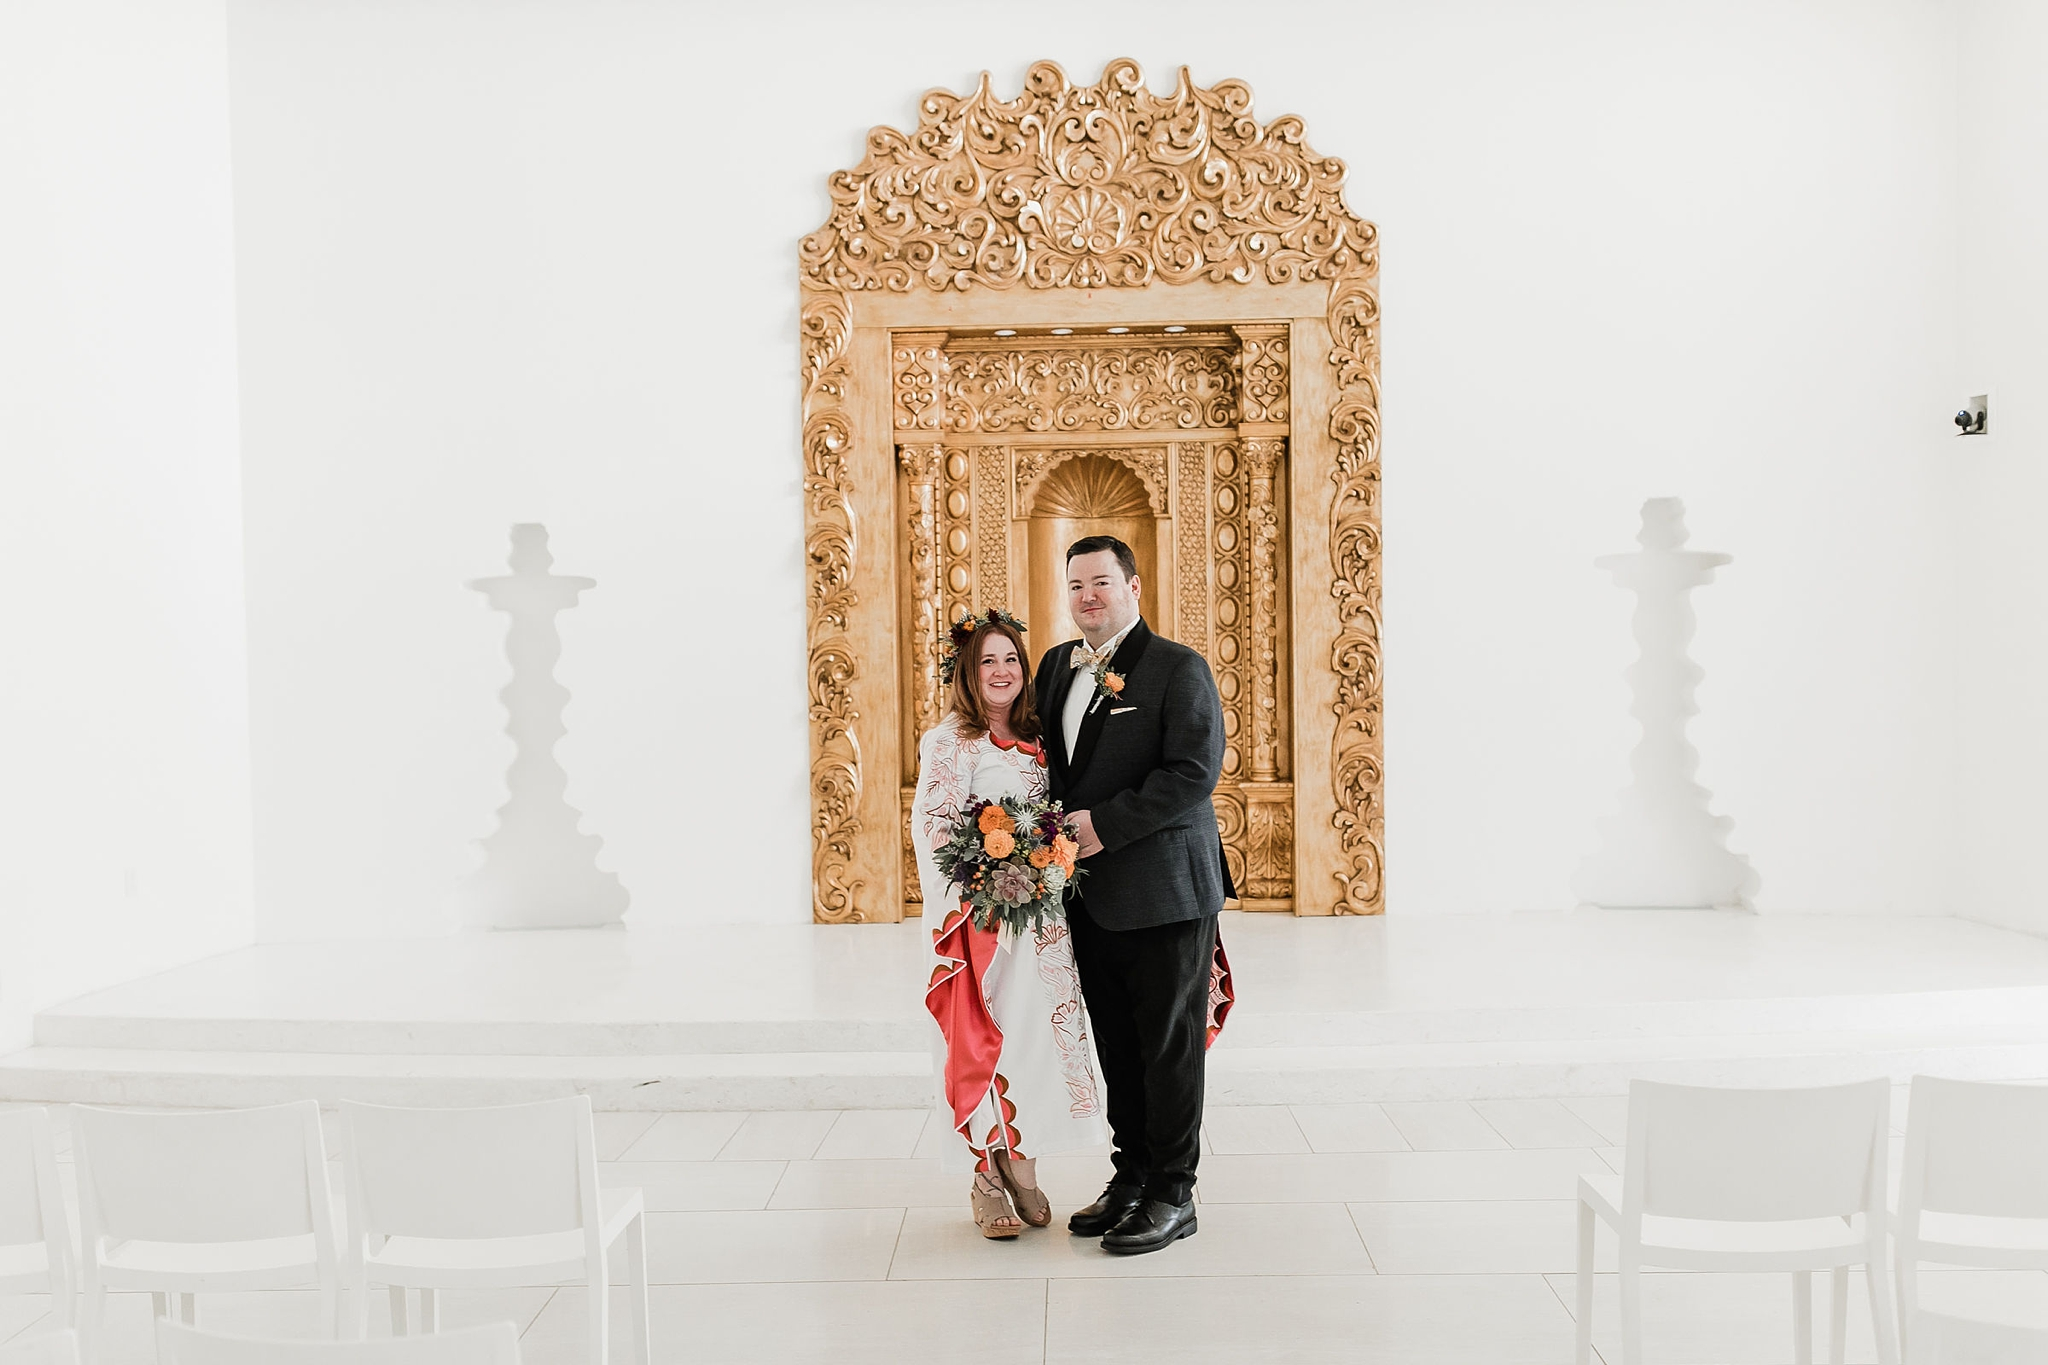 Alicia+lucia+photography+-+albuquerque+wedding+photographer+-+santa+fe+wedding+photography+-+new+mexico+wedding+photographer+-+albuquerque+wedding+-+santa+fe+wedding+-+wedding+gowns+-+non+traditional+wedding+gowns_0023.jpg